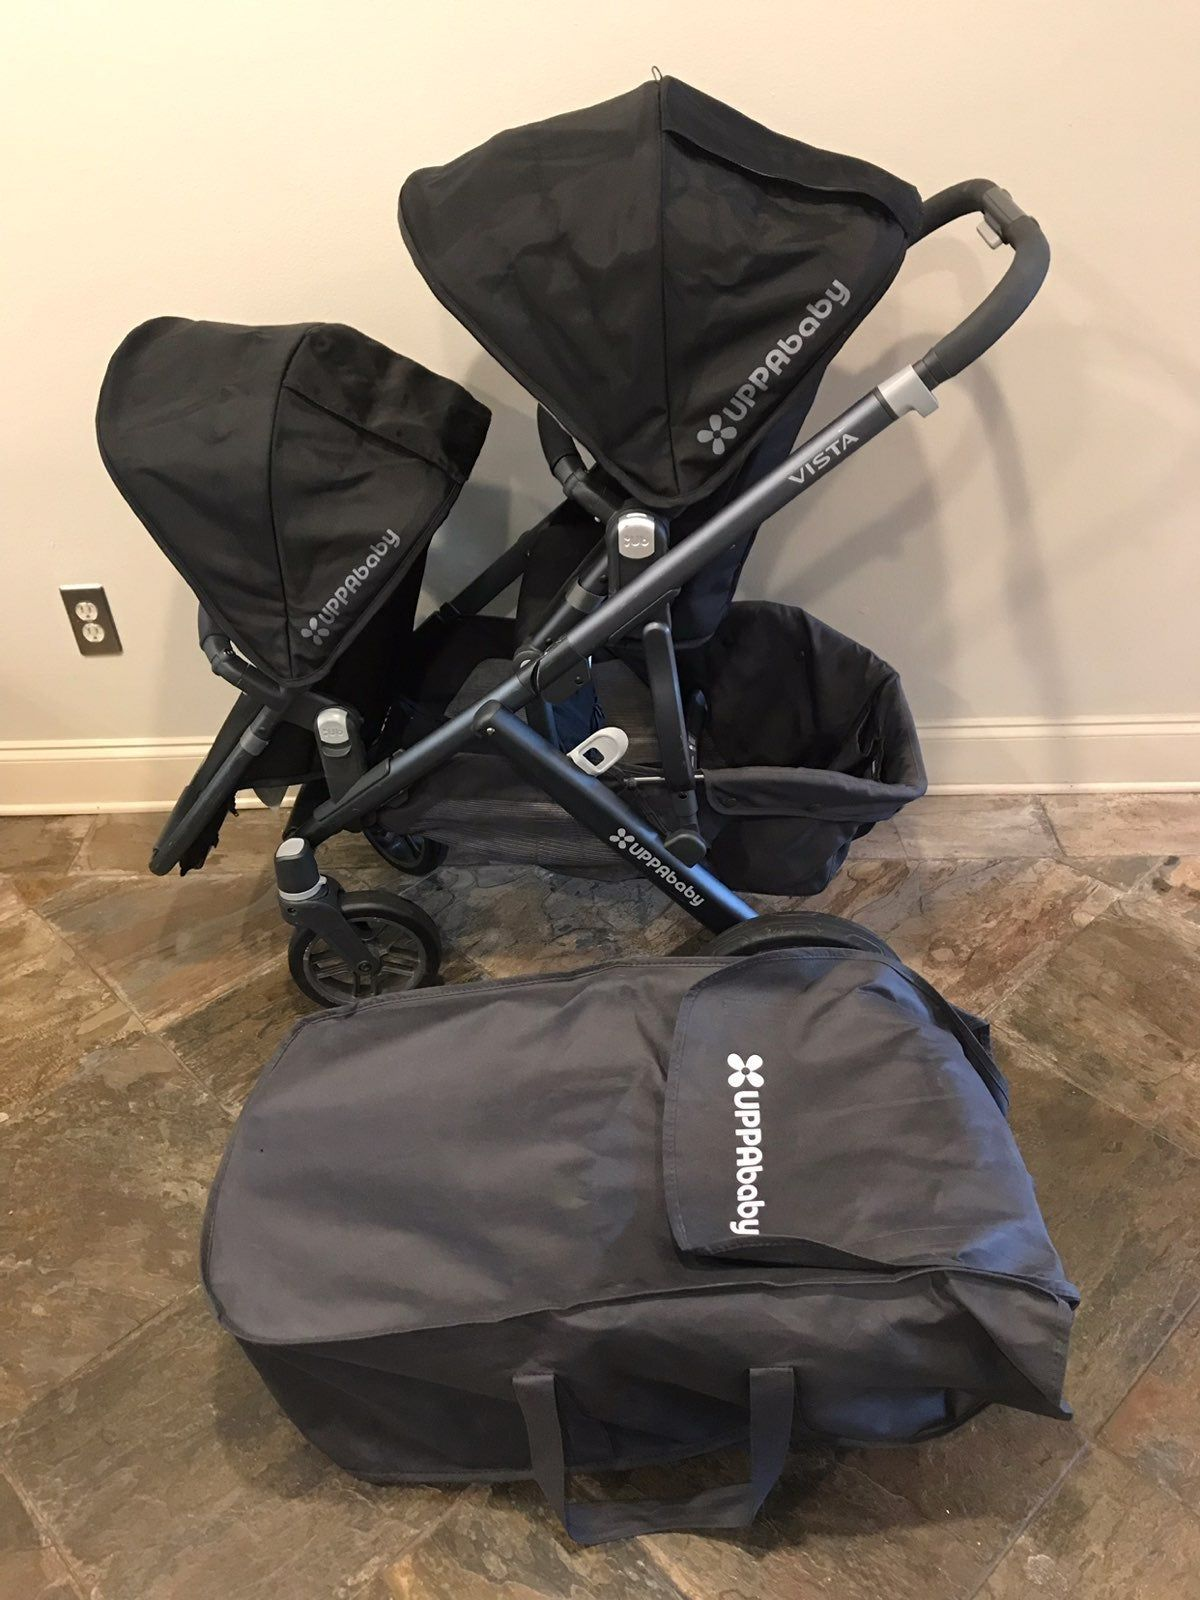 Uppa baby vista 2016 Includes and Toddler Seat